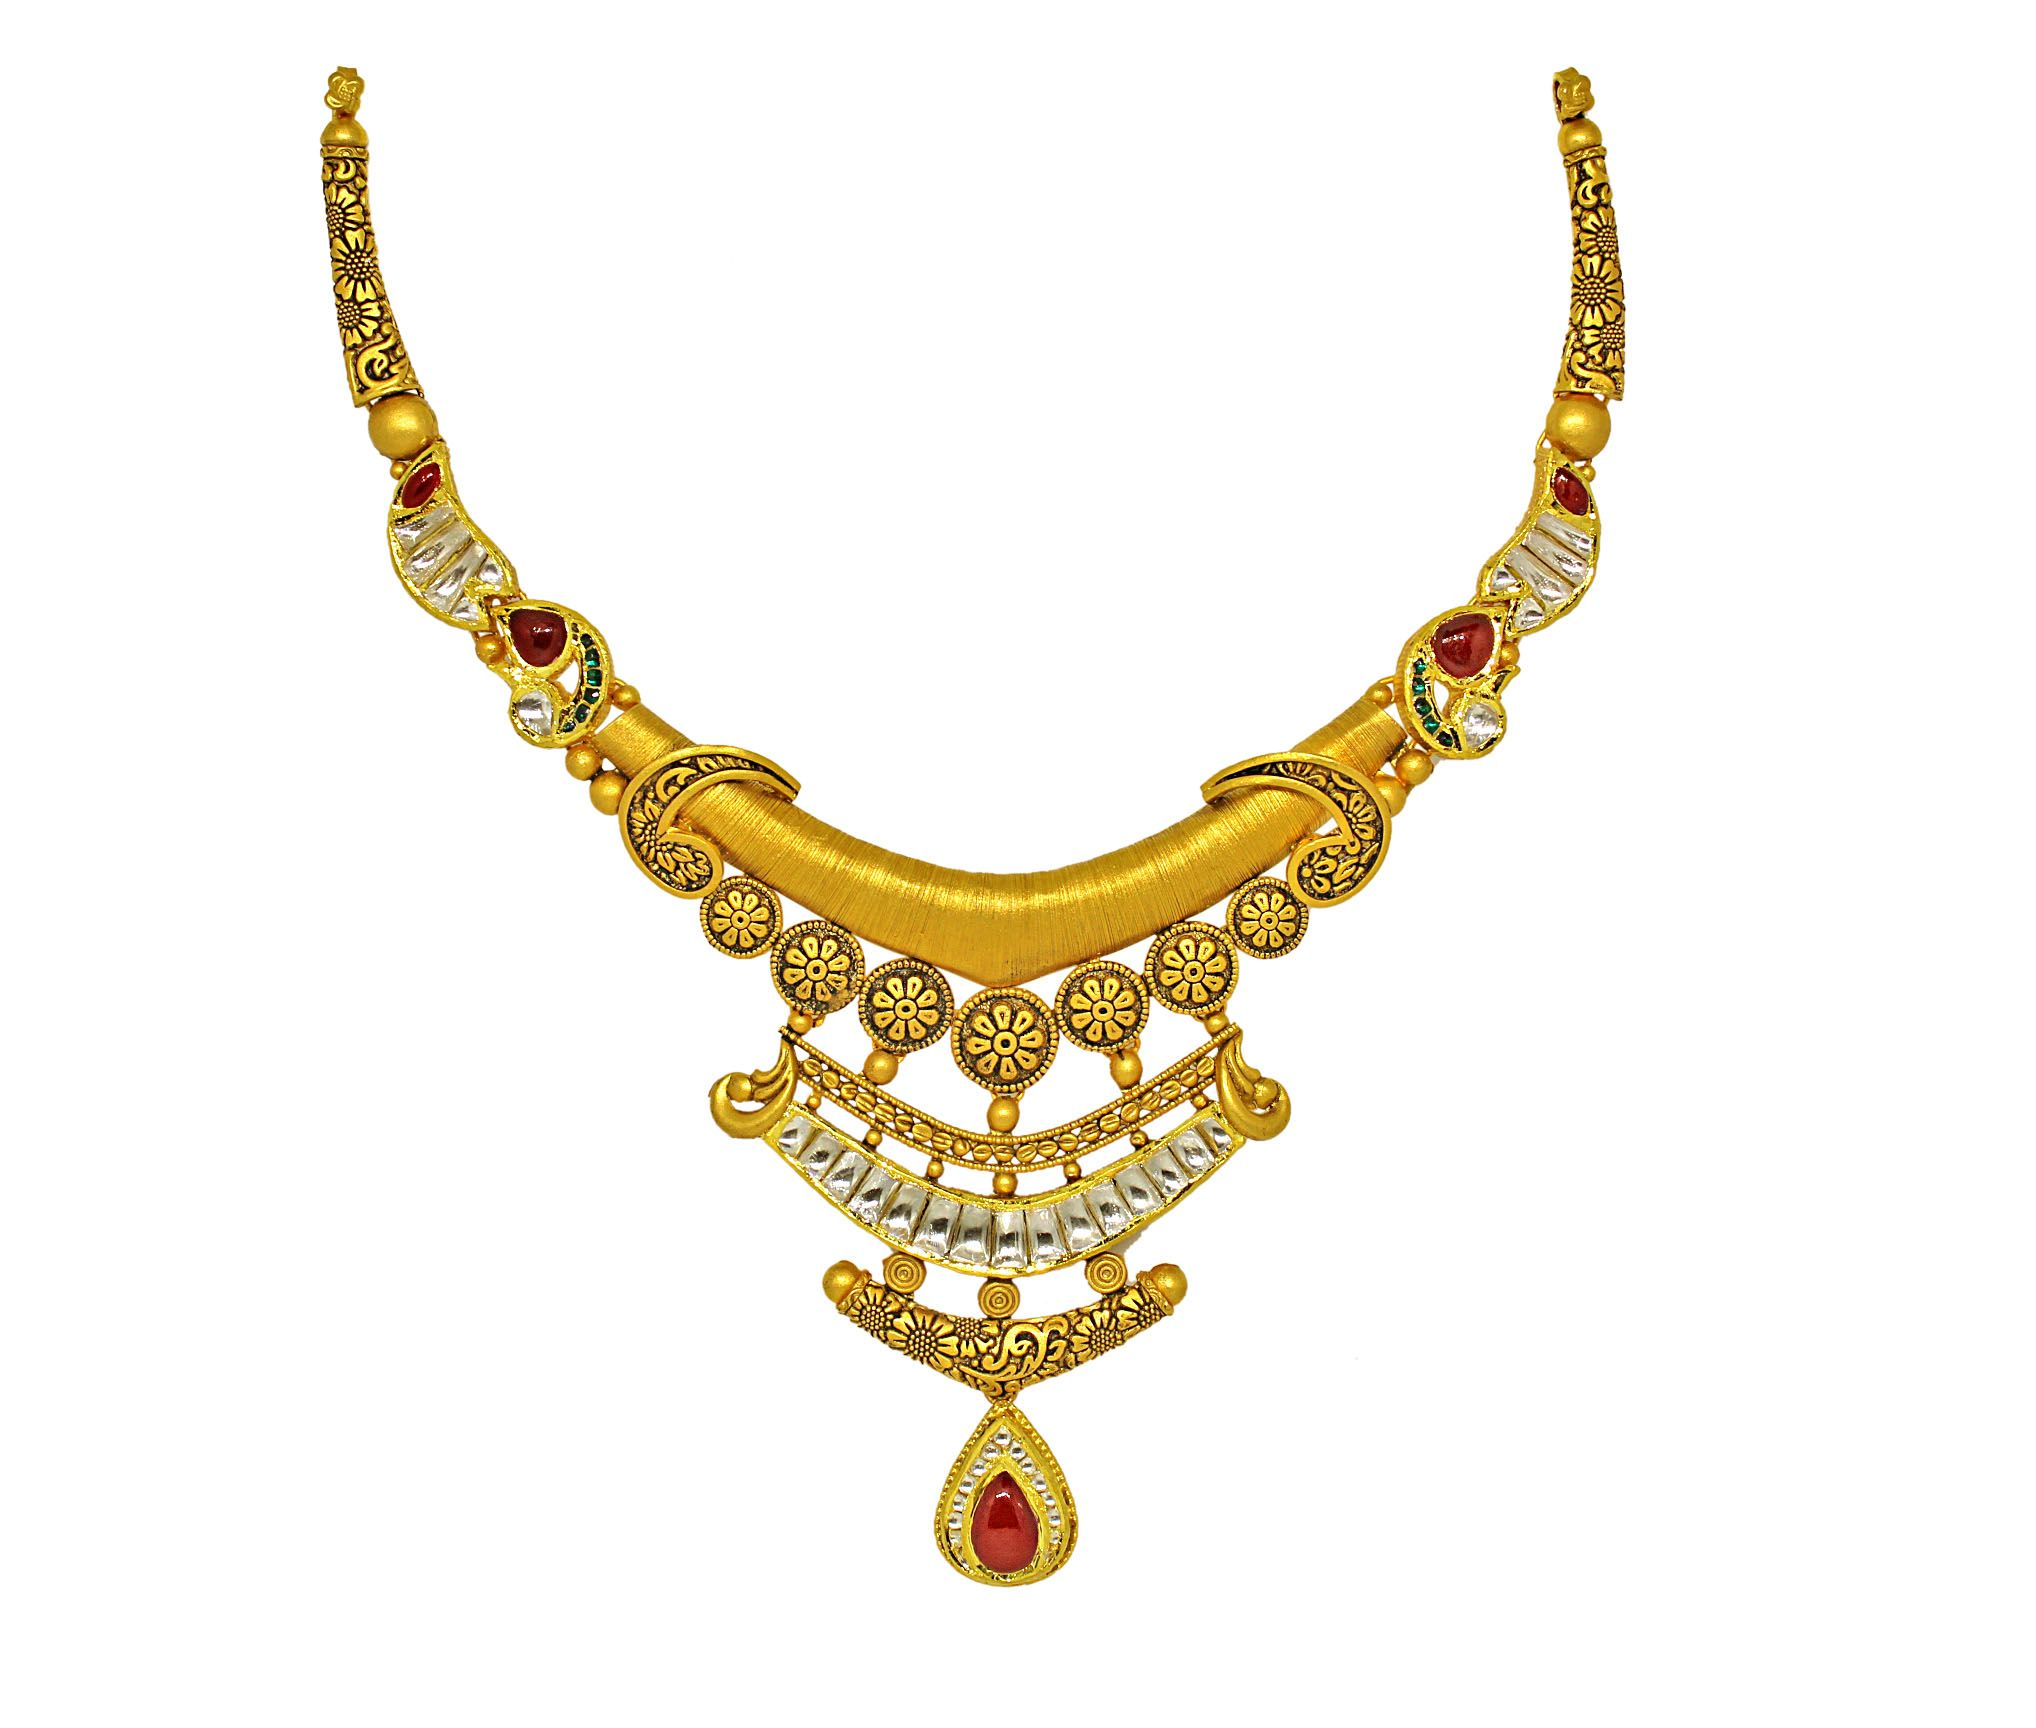 Png Necklace Gold Gold Necklace Women Diamond Pendant Jewelry Gold Necklace